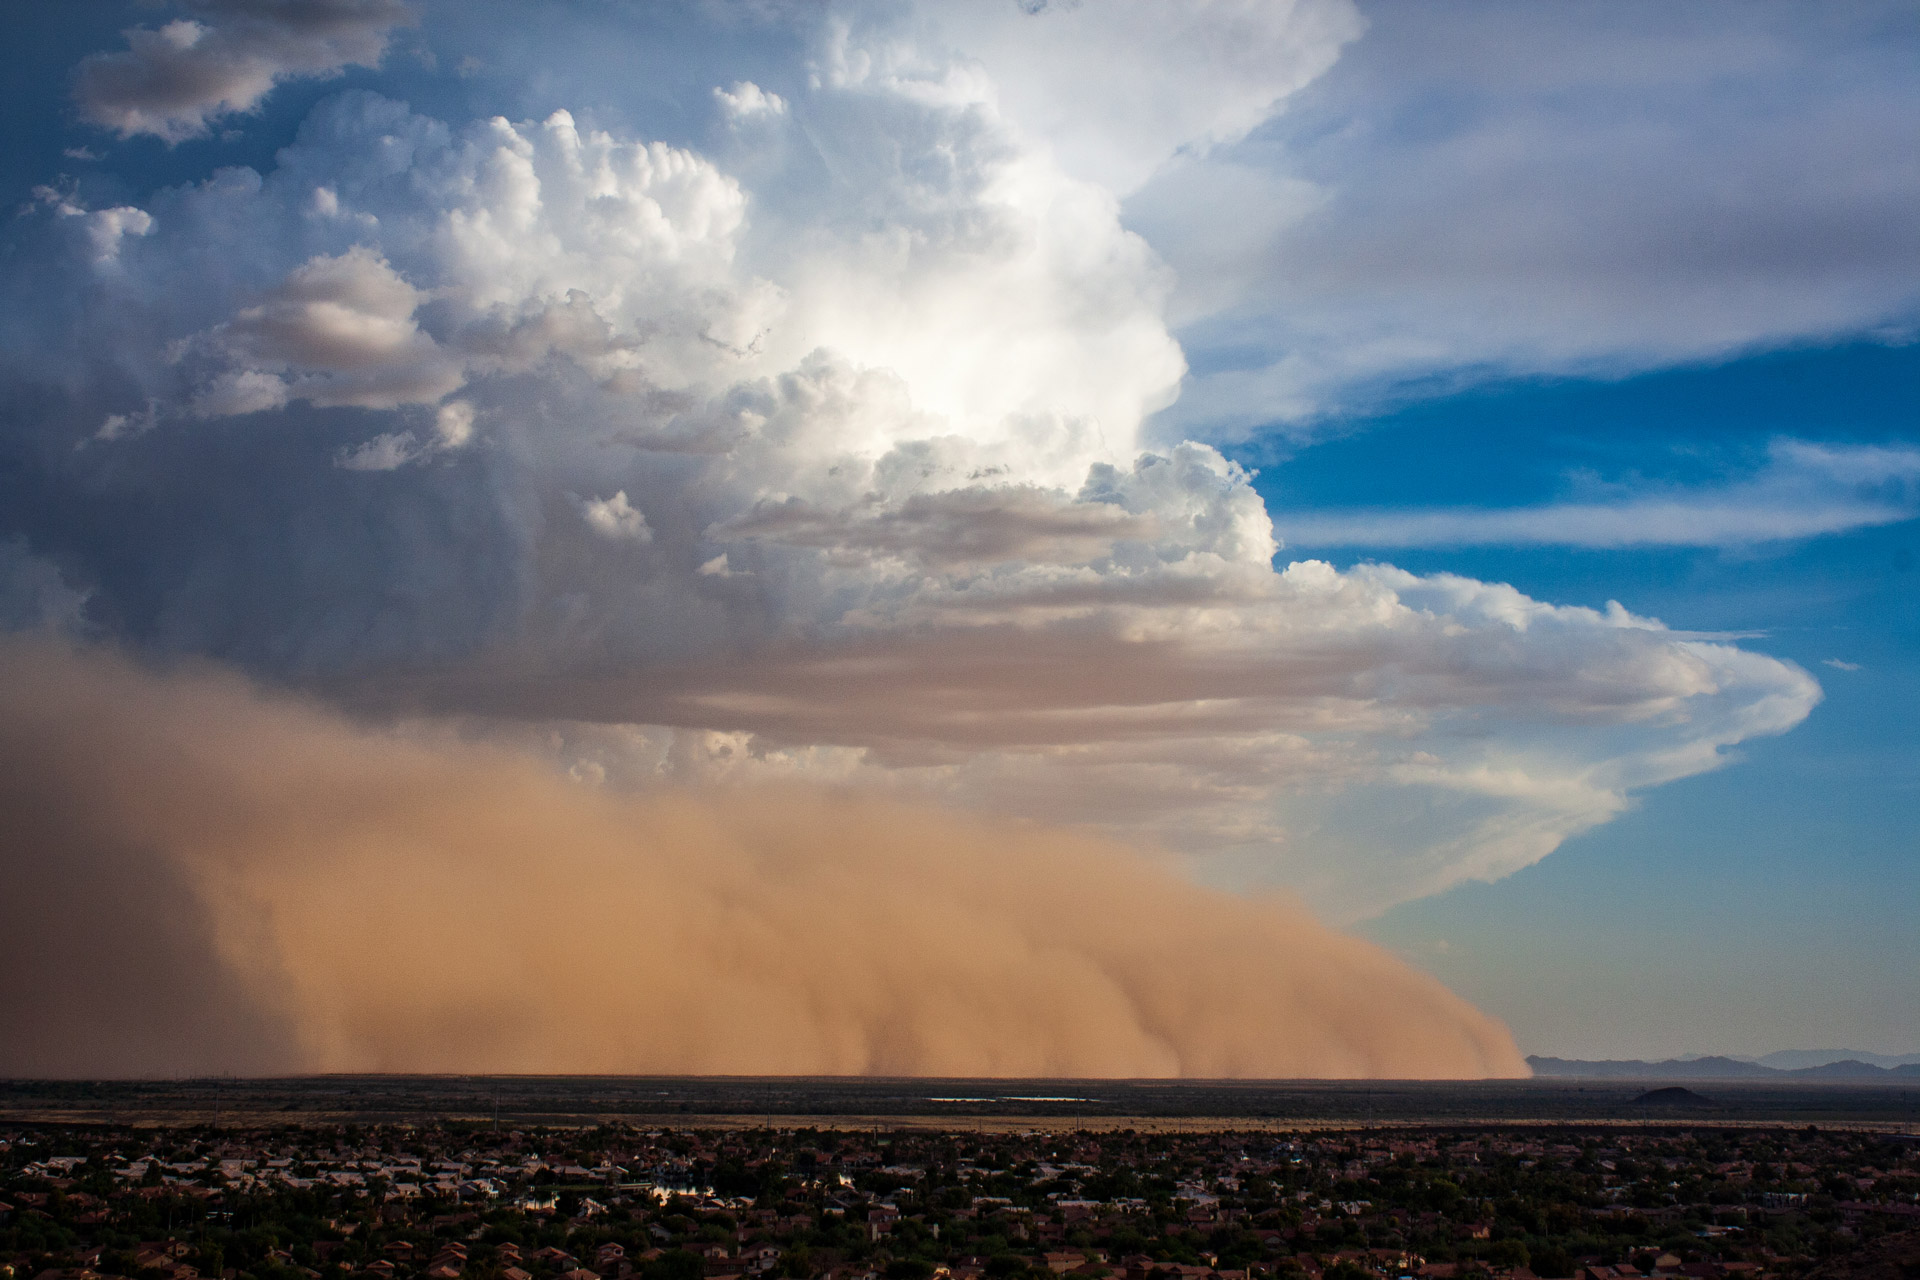 A large dust storm travels northwest towards the Phoenix metro area